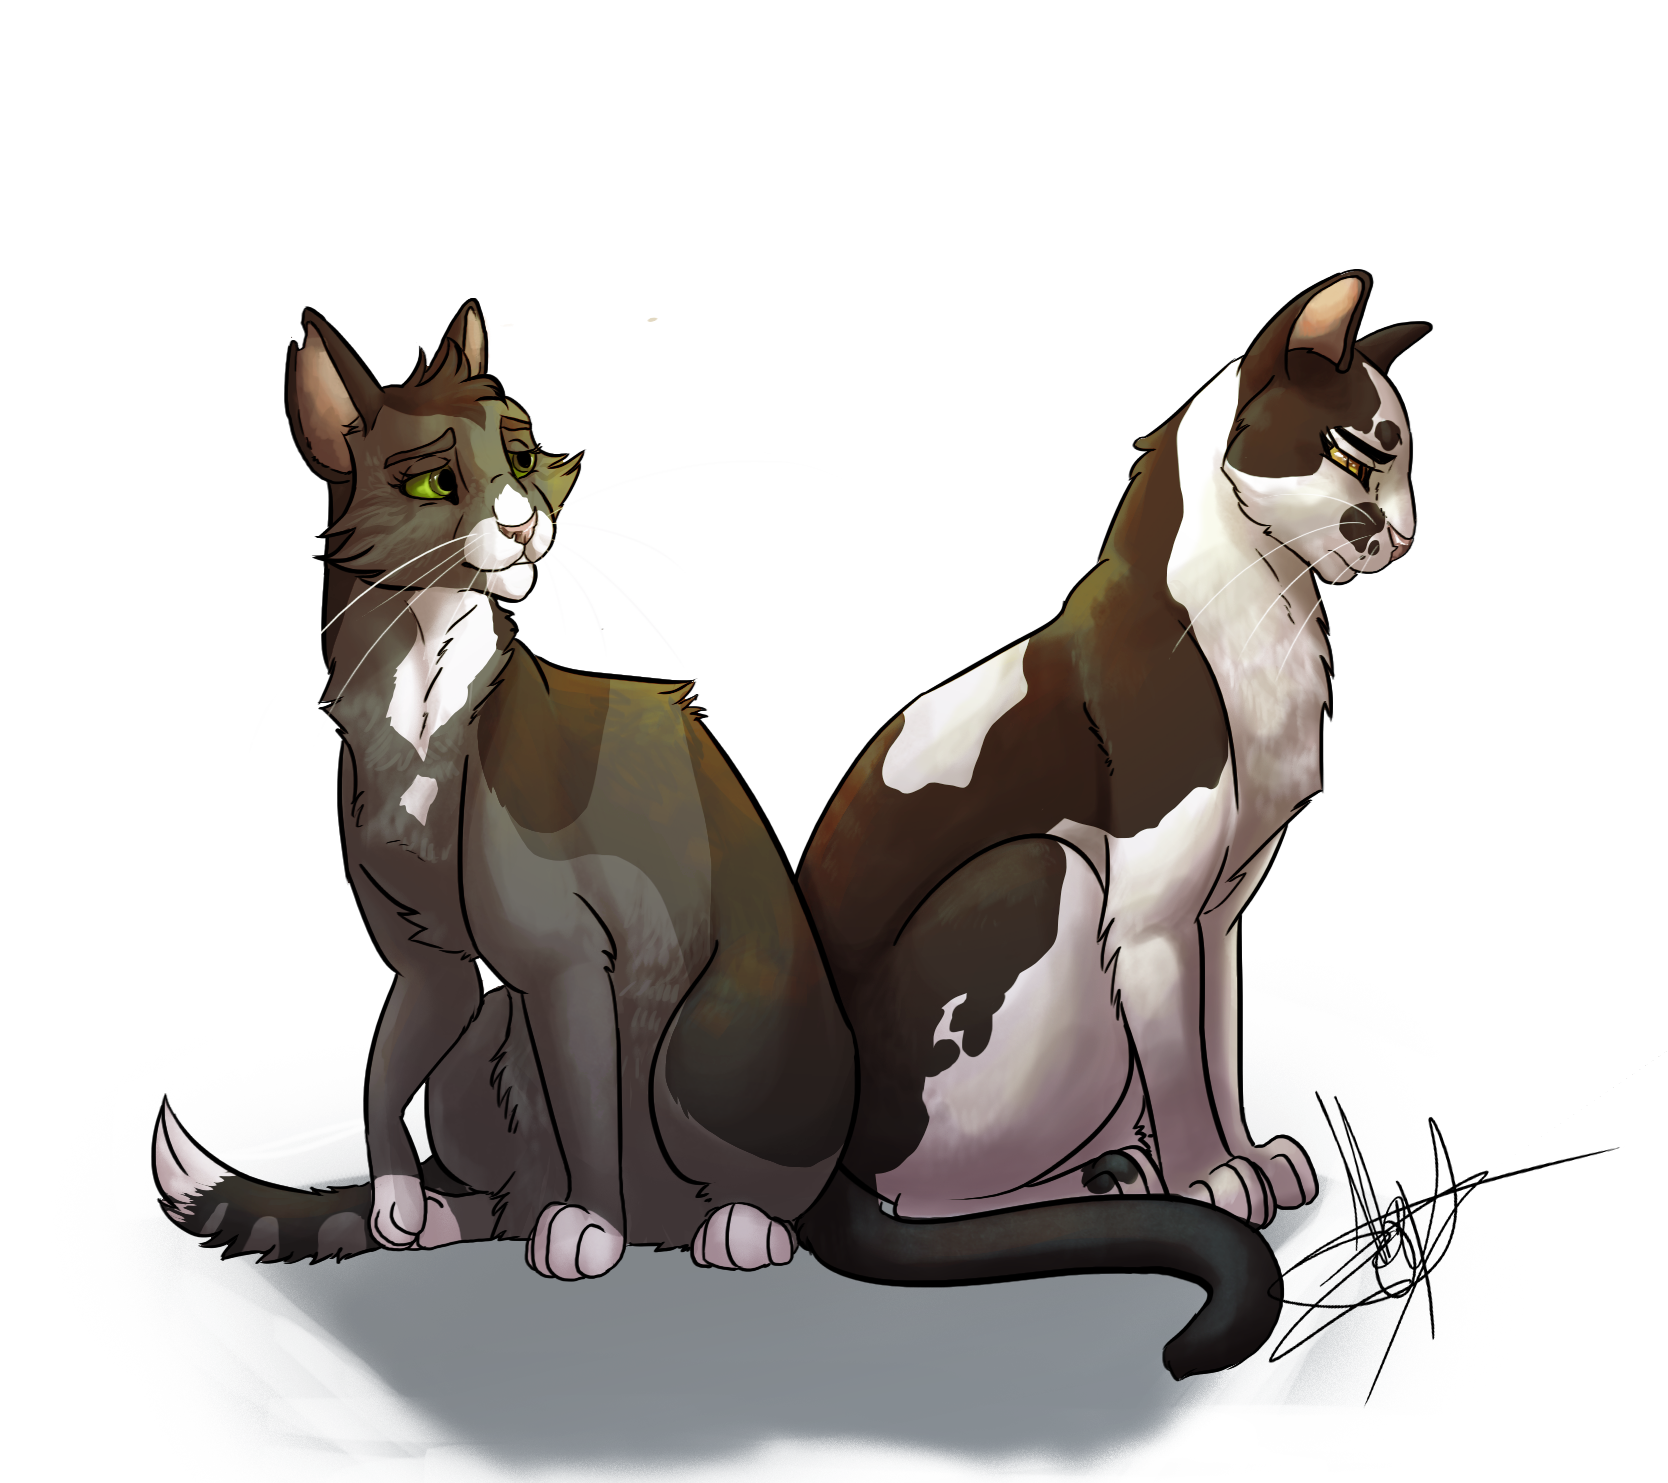 Warriors A Vision Of Shadows Free Download: Violetpaw And Twigpaw By Daisywolf13 On DeviantArt